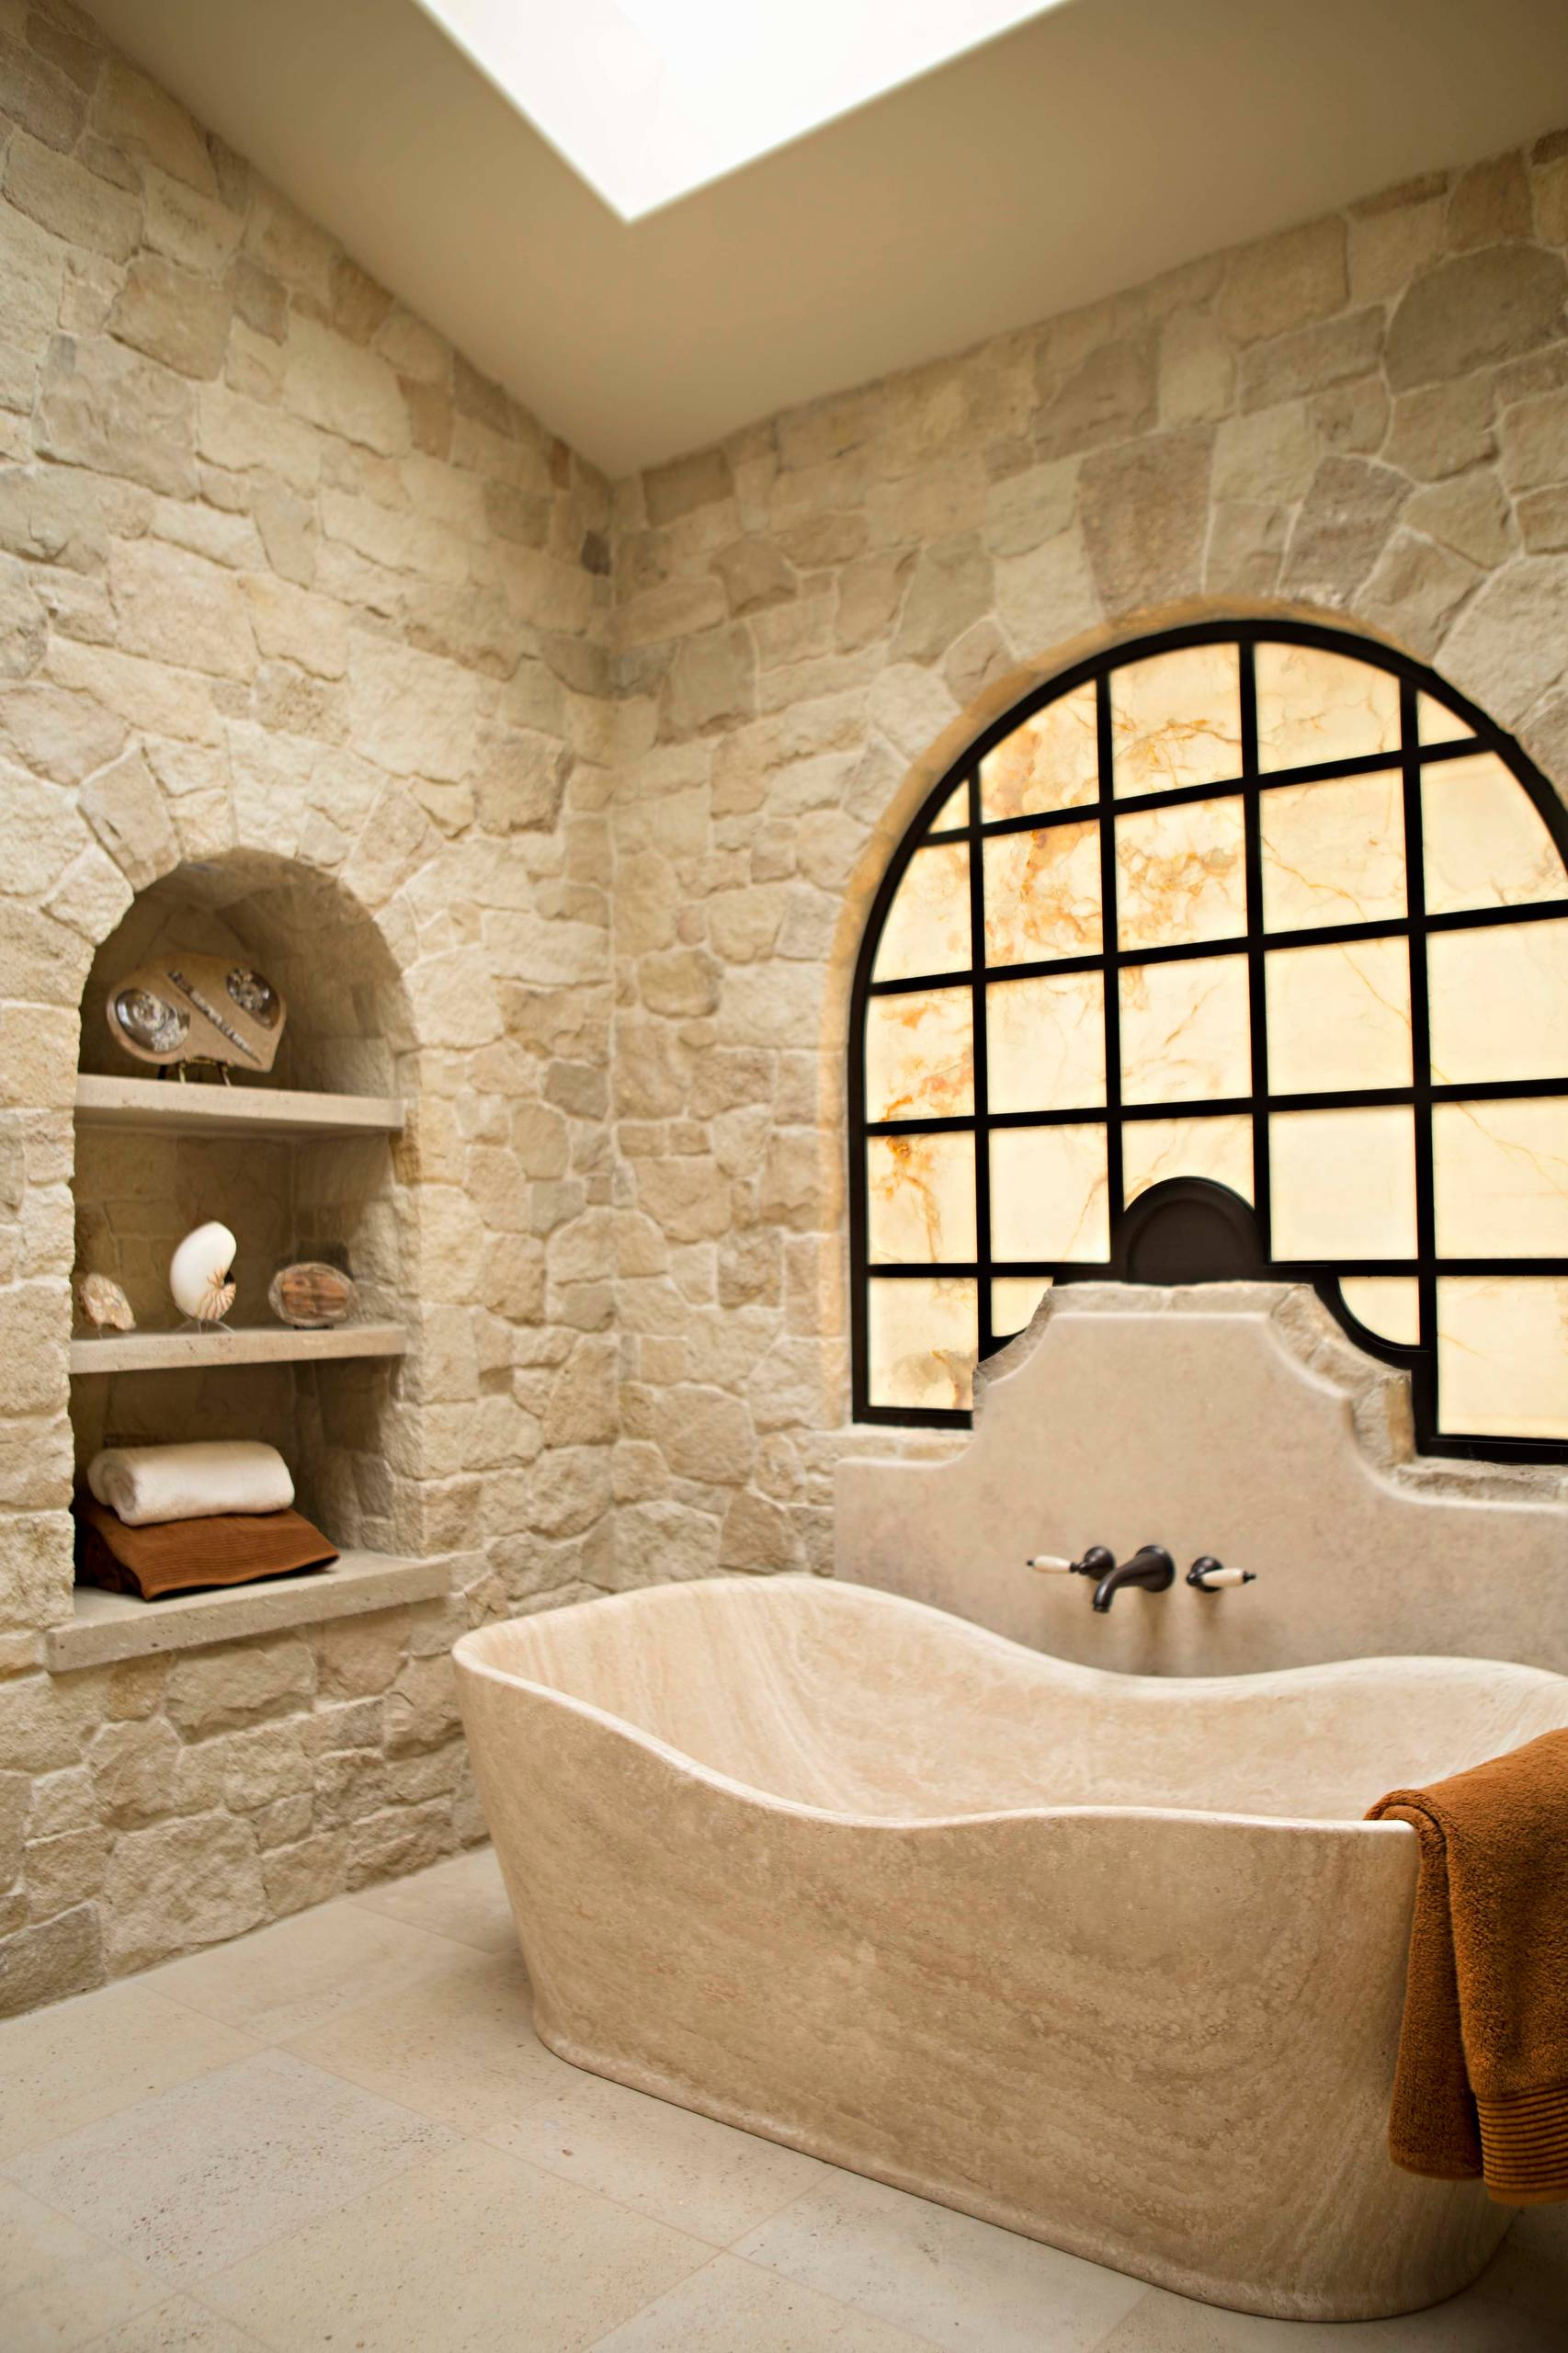 20 enchanting mediterranean bathroom designs you must see for The bathroom designer